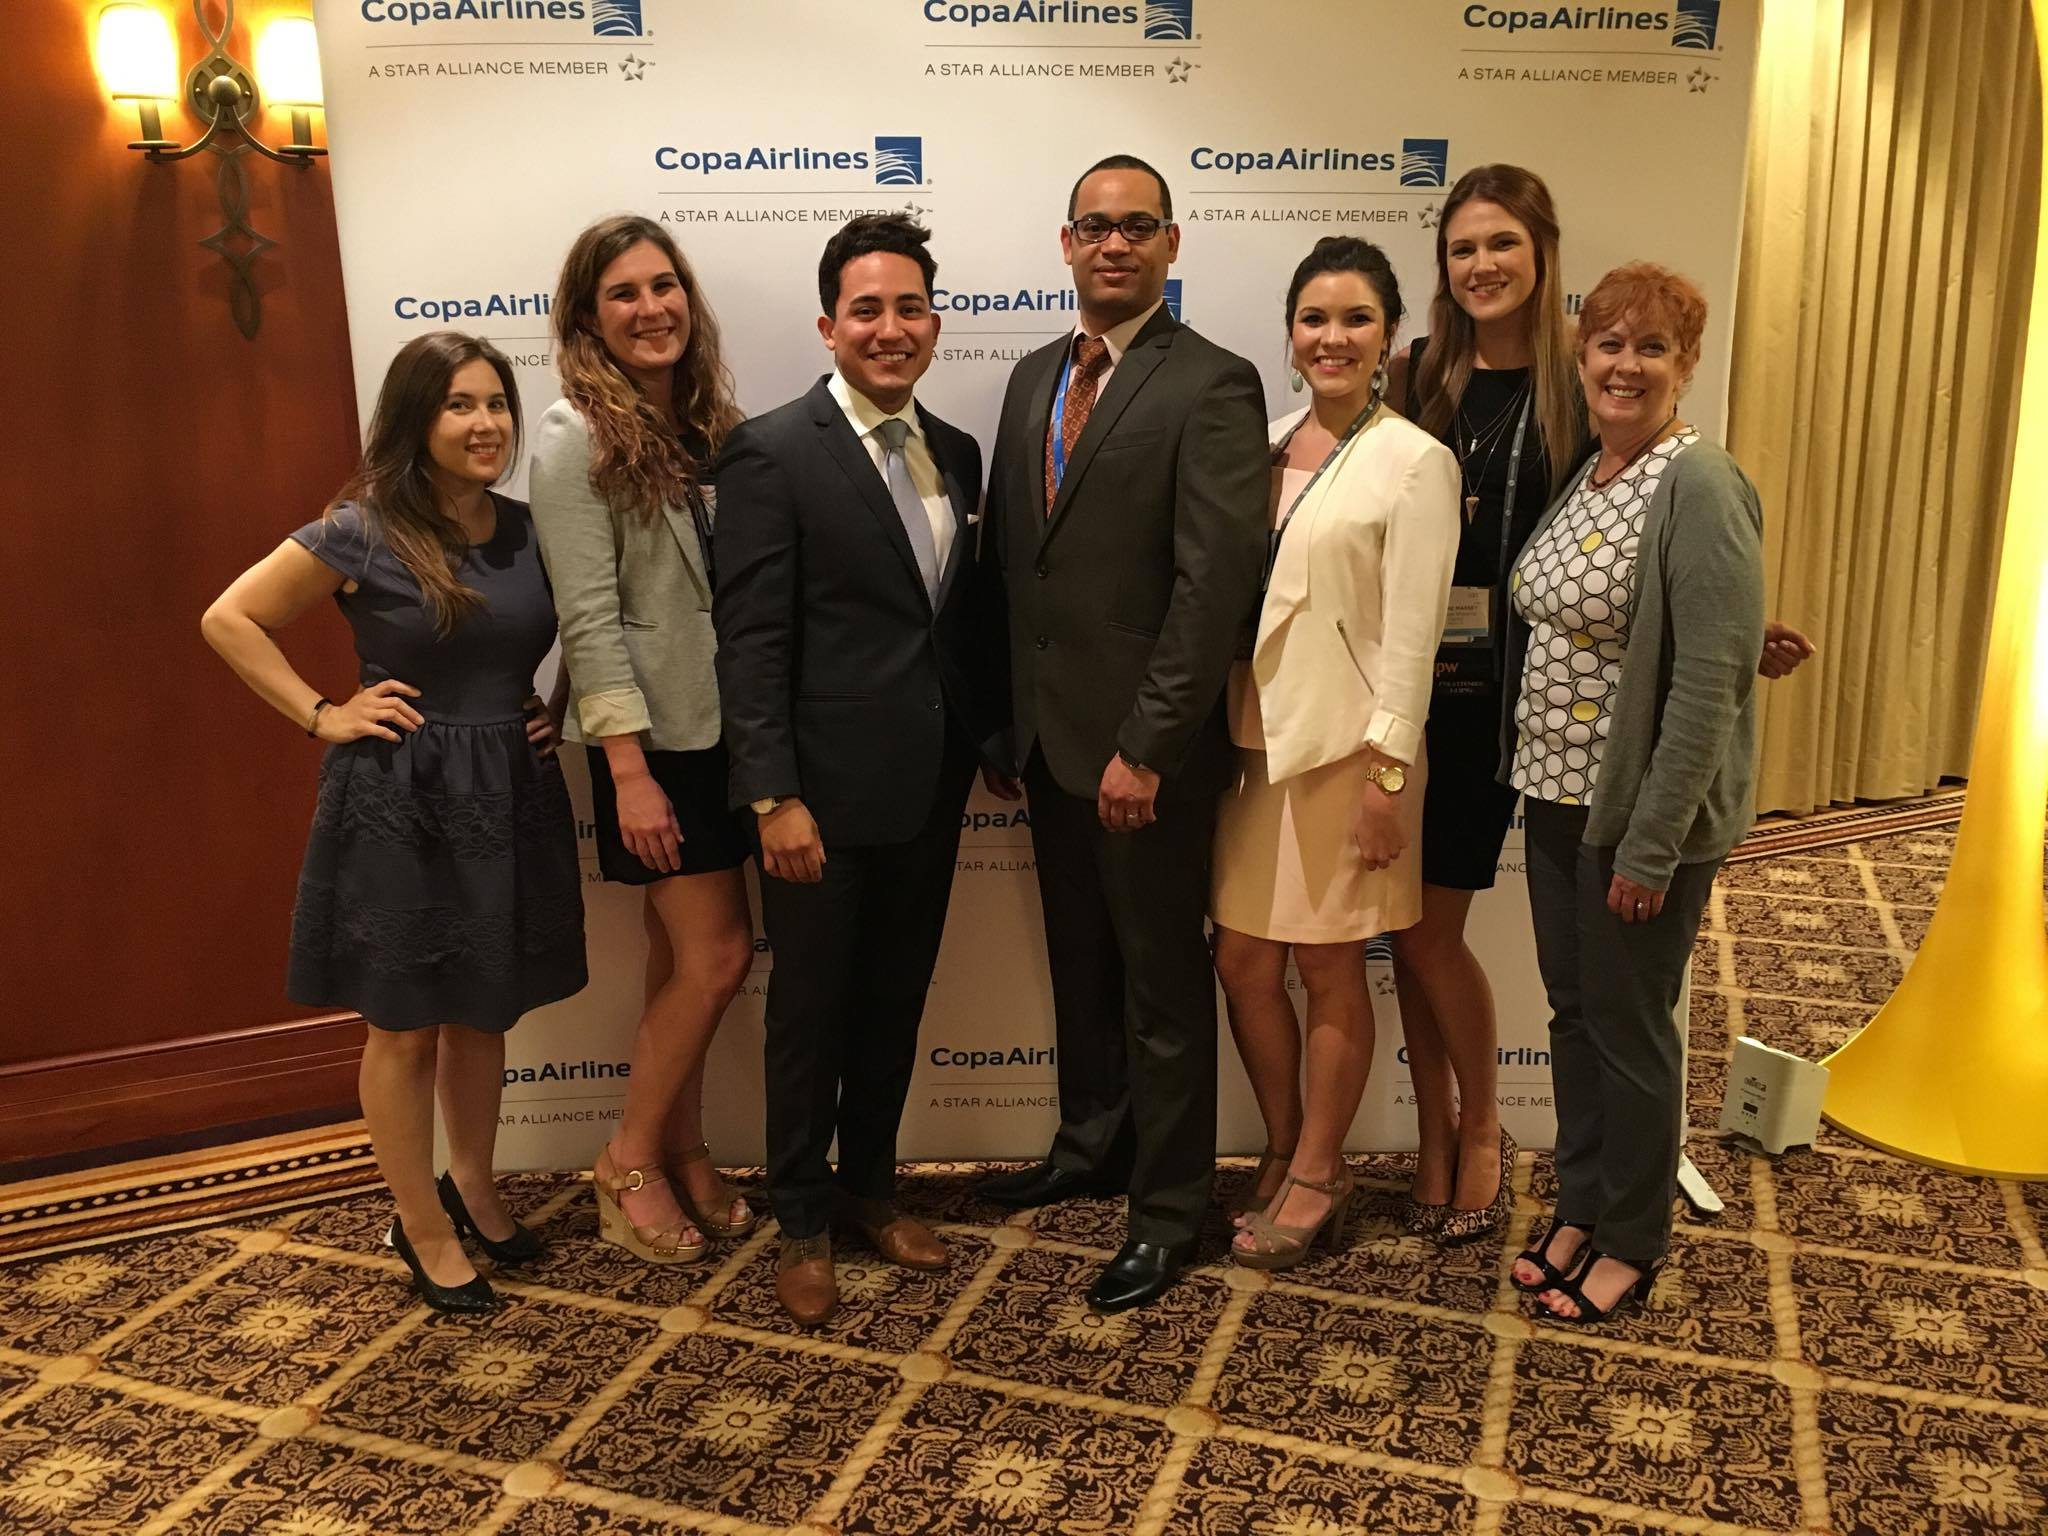 IPW16 Louisiana Latin American Task Force with Copa Airlines and Tomahawk Tourism Marketing